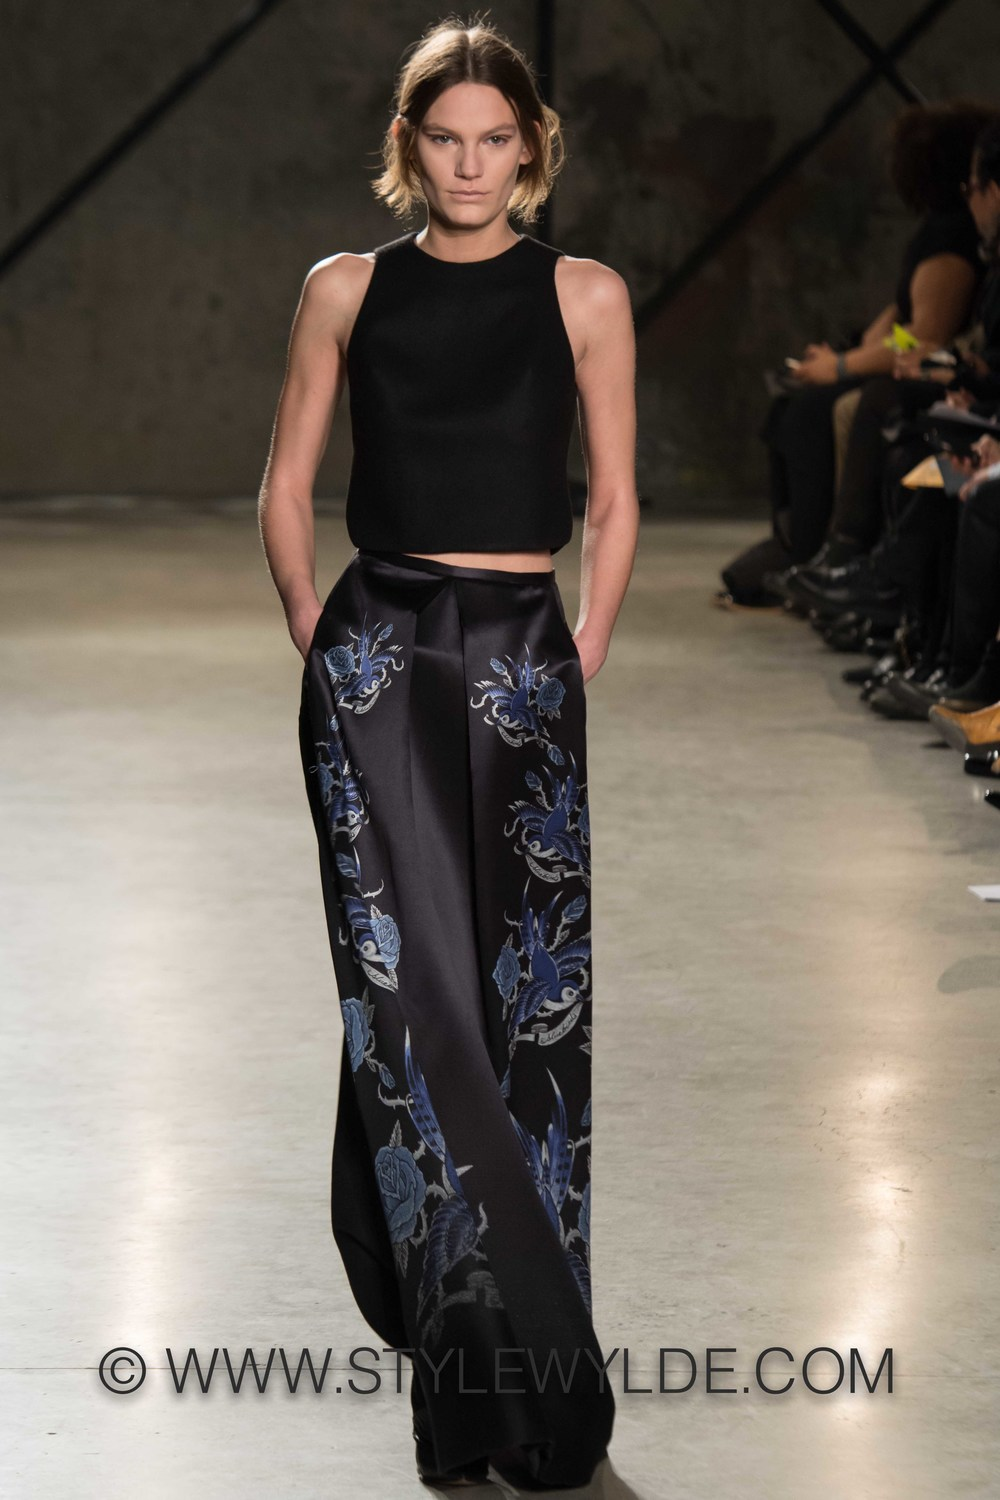 stylewylde_sally_lapointe_fw_2014-38.jpg